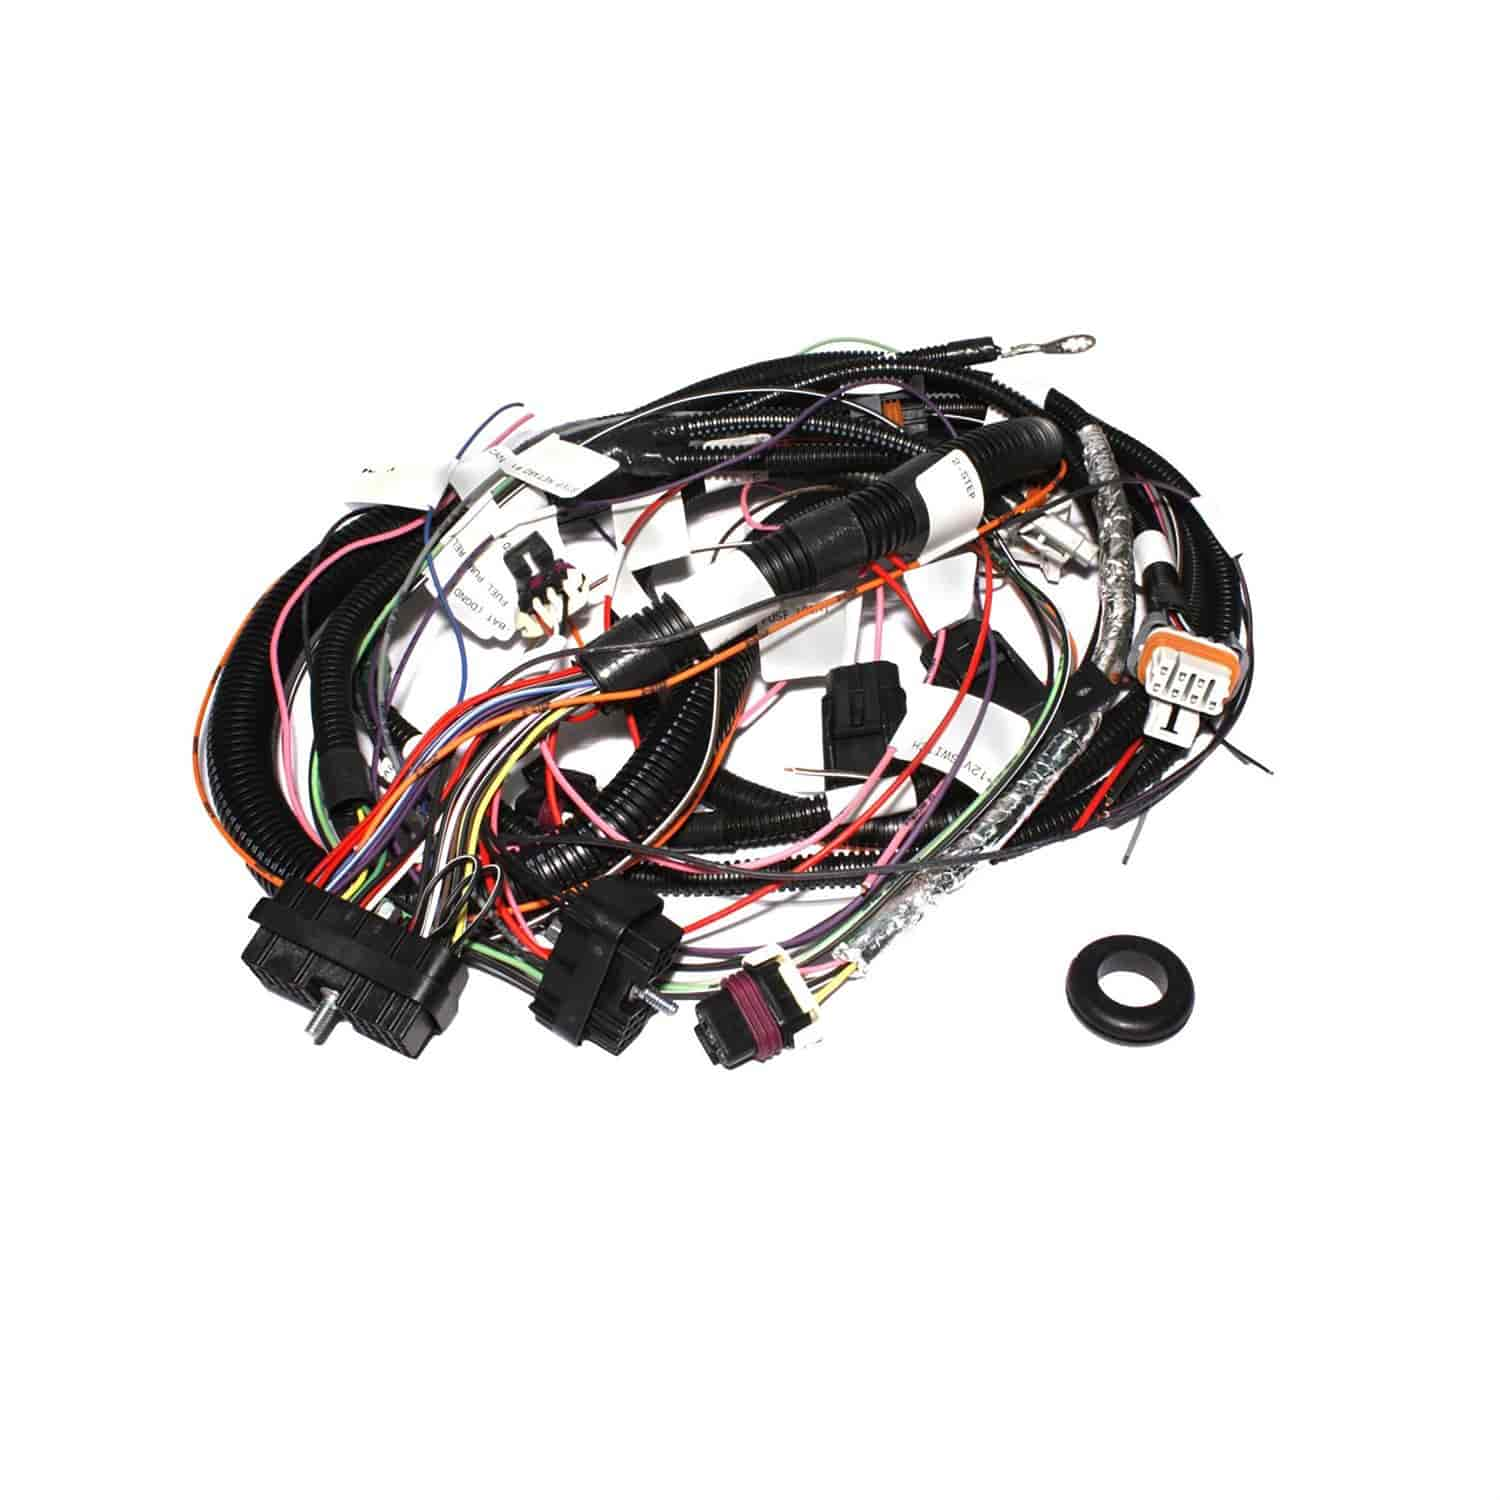 244 301972 fast 301972 xim fuel injection wiring harness for ls1 jegs 1986 Toyota SR5 Fuel Injector Wire Harness at reclaimingppi.co